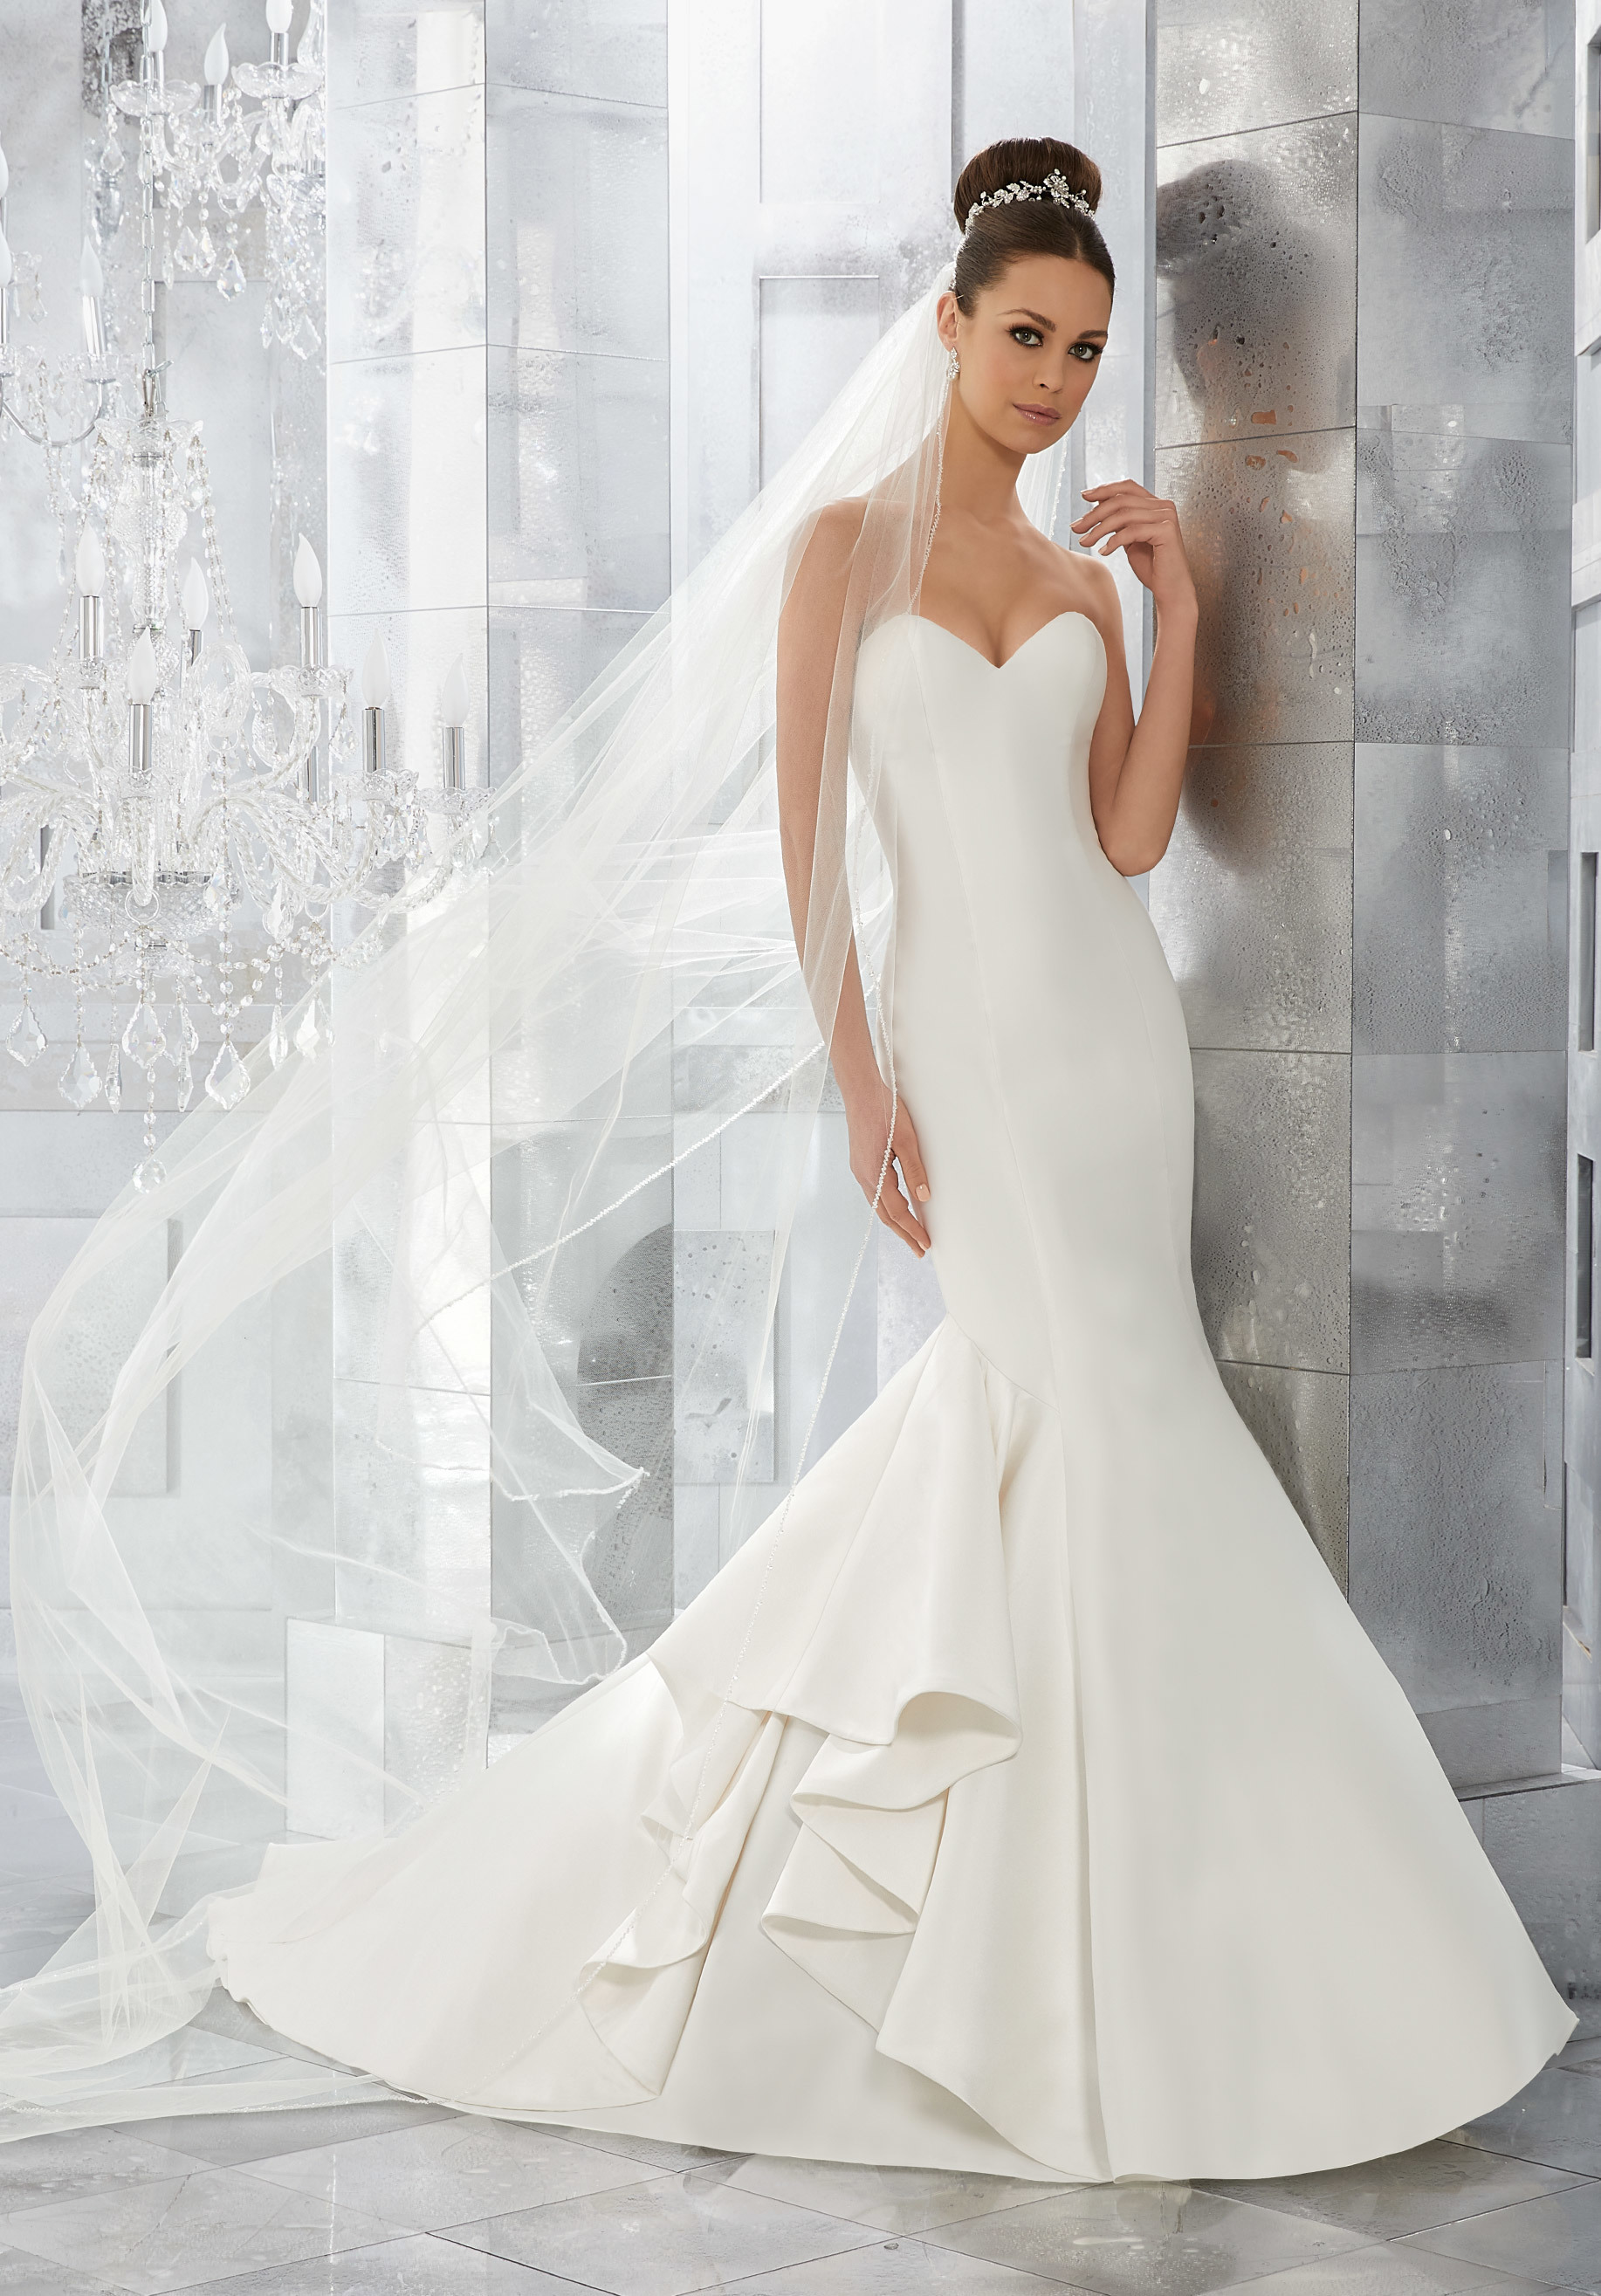 Mori lee - 5563 size 10 - $600 - (50% OFF)